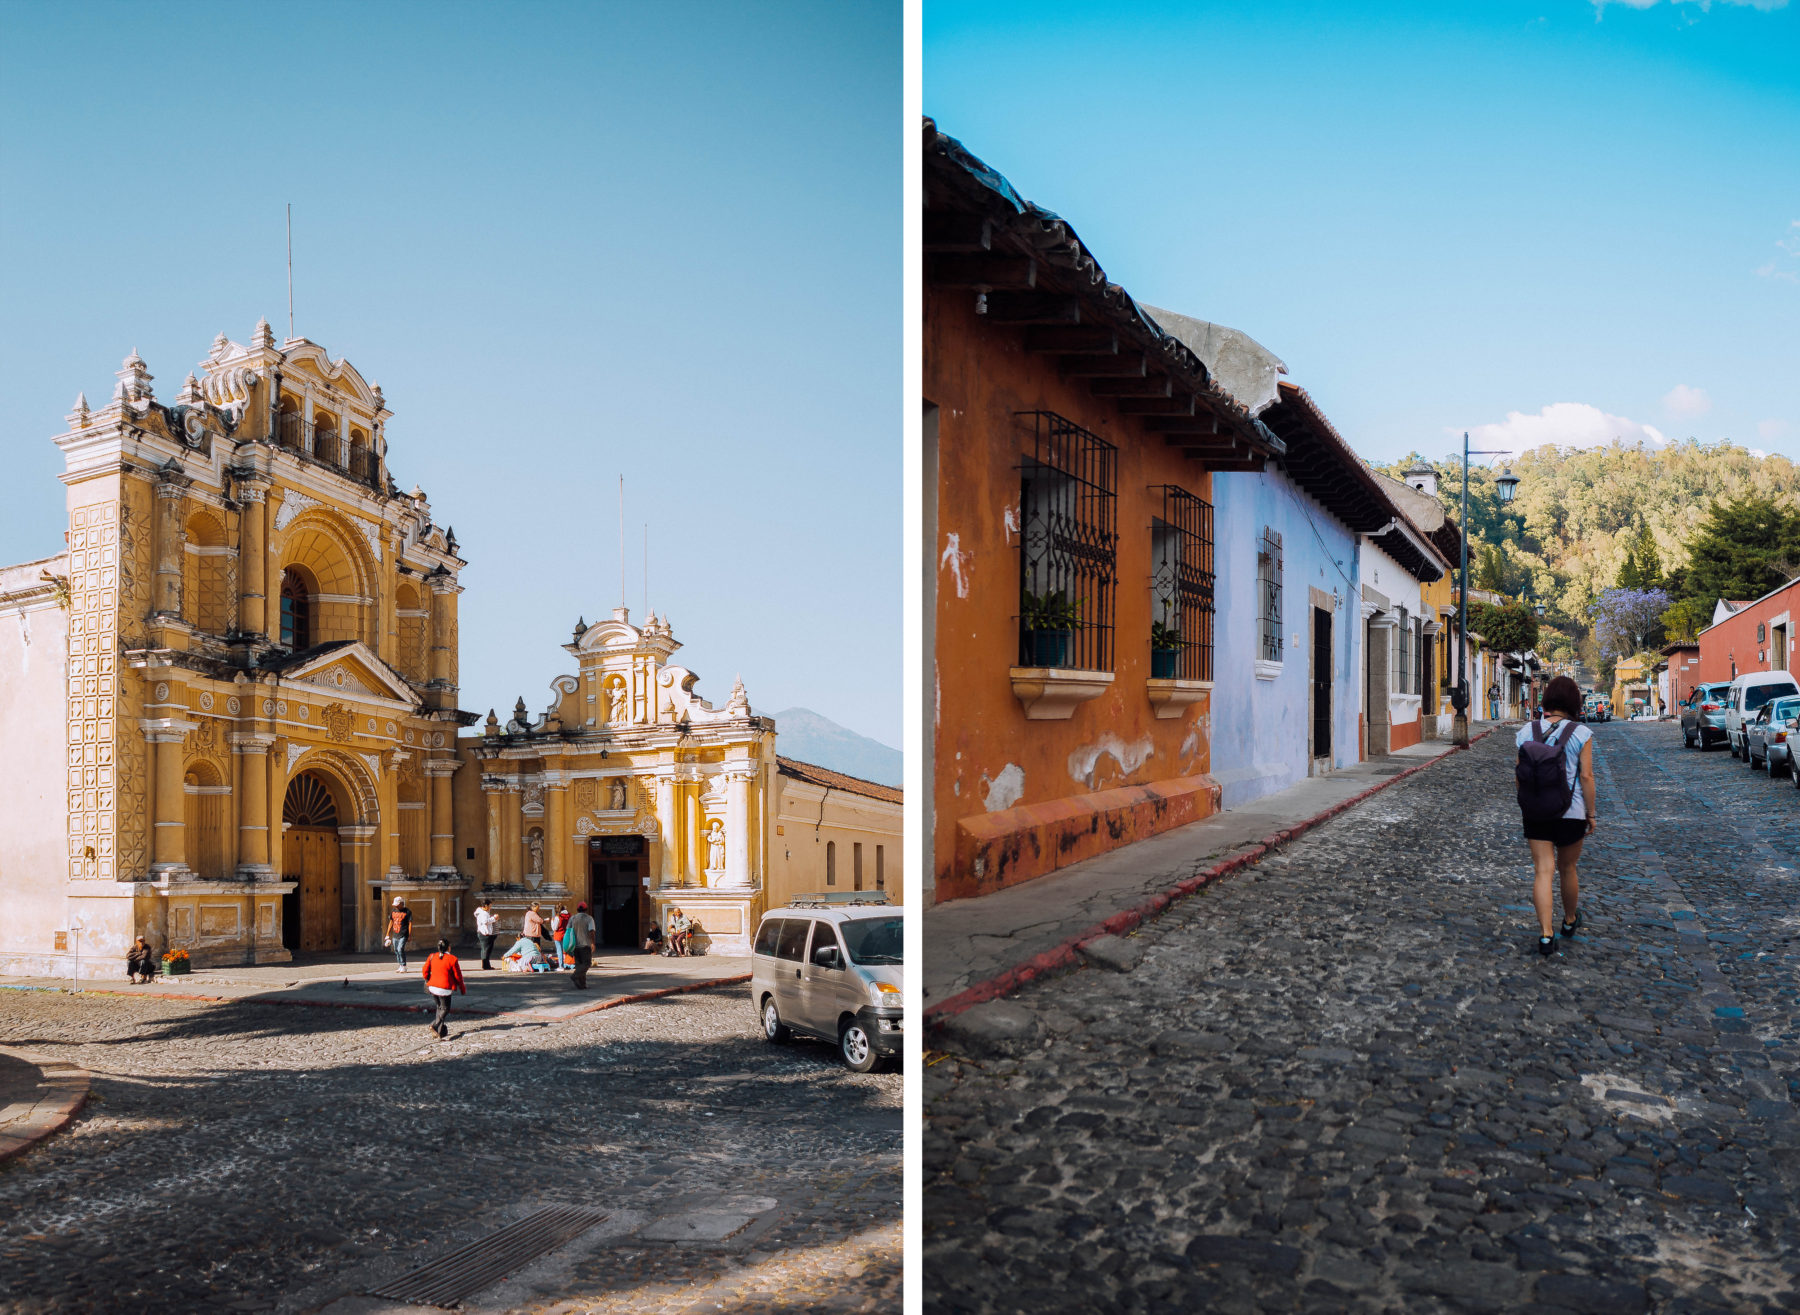 antigua guatemala colourful colonian central america local people volcano streets houses culture kids smiling fruit vendors